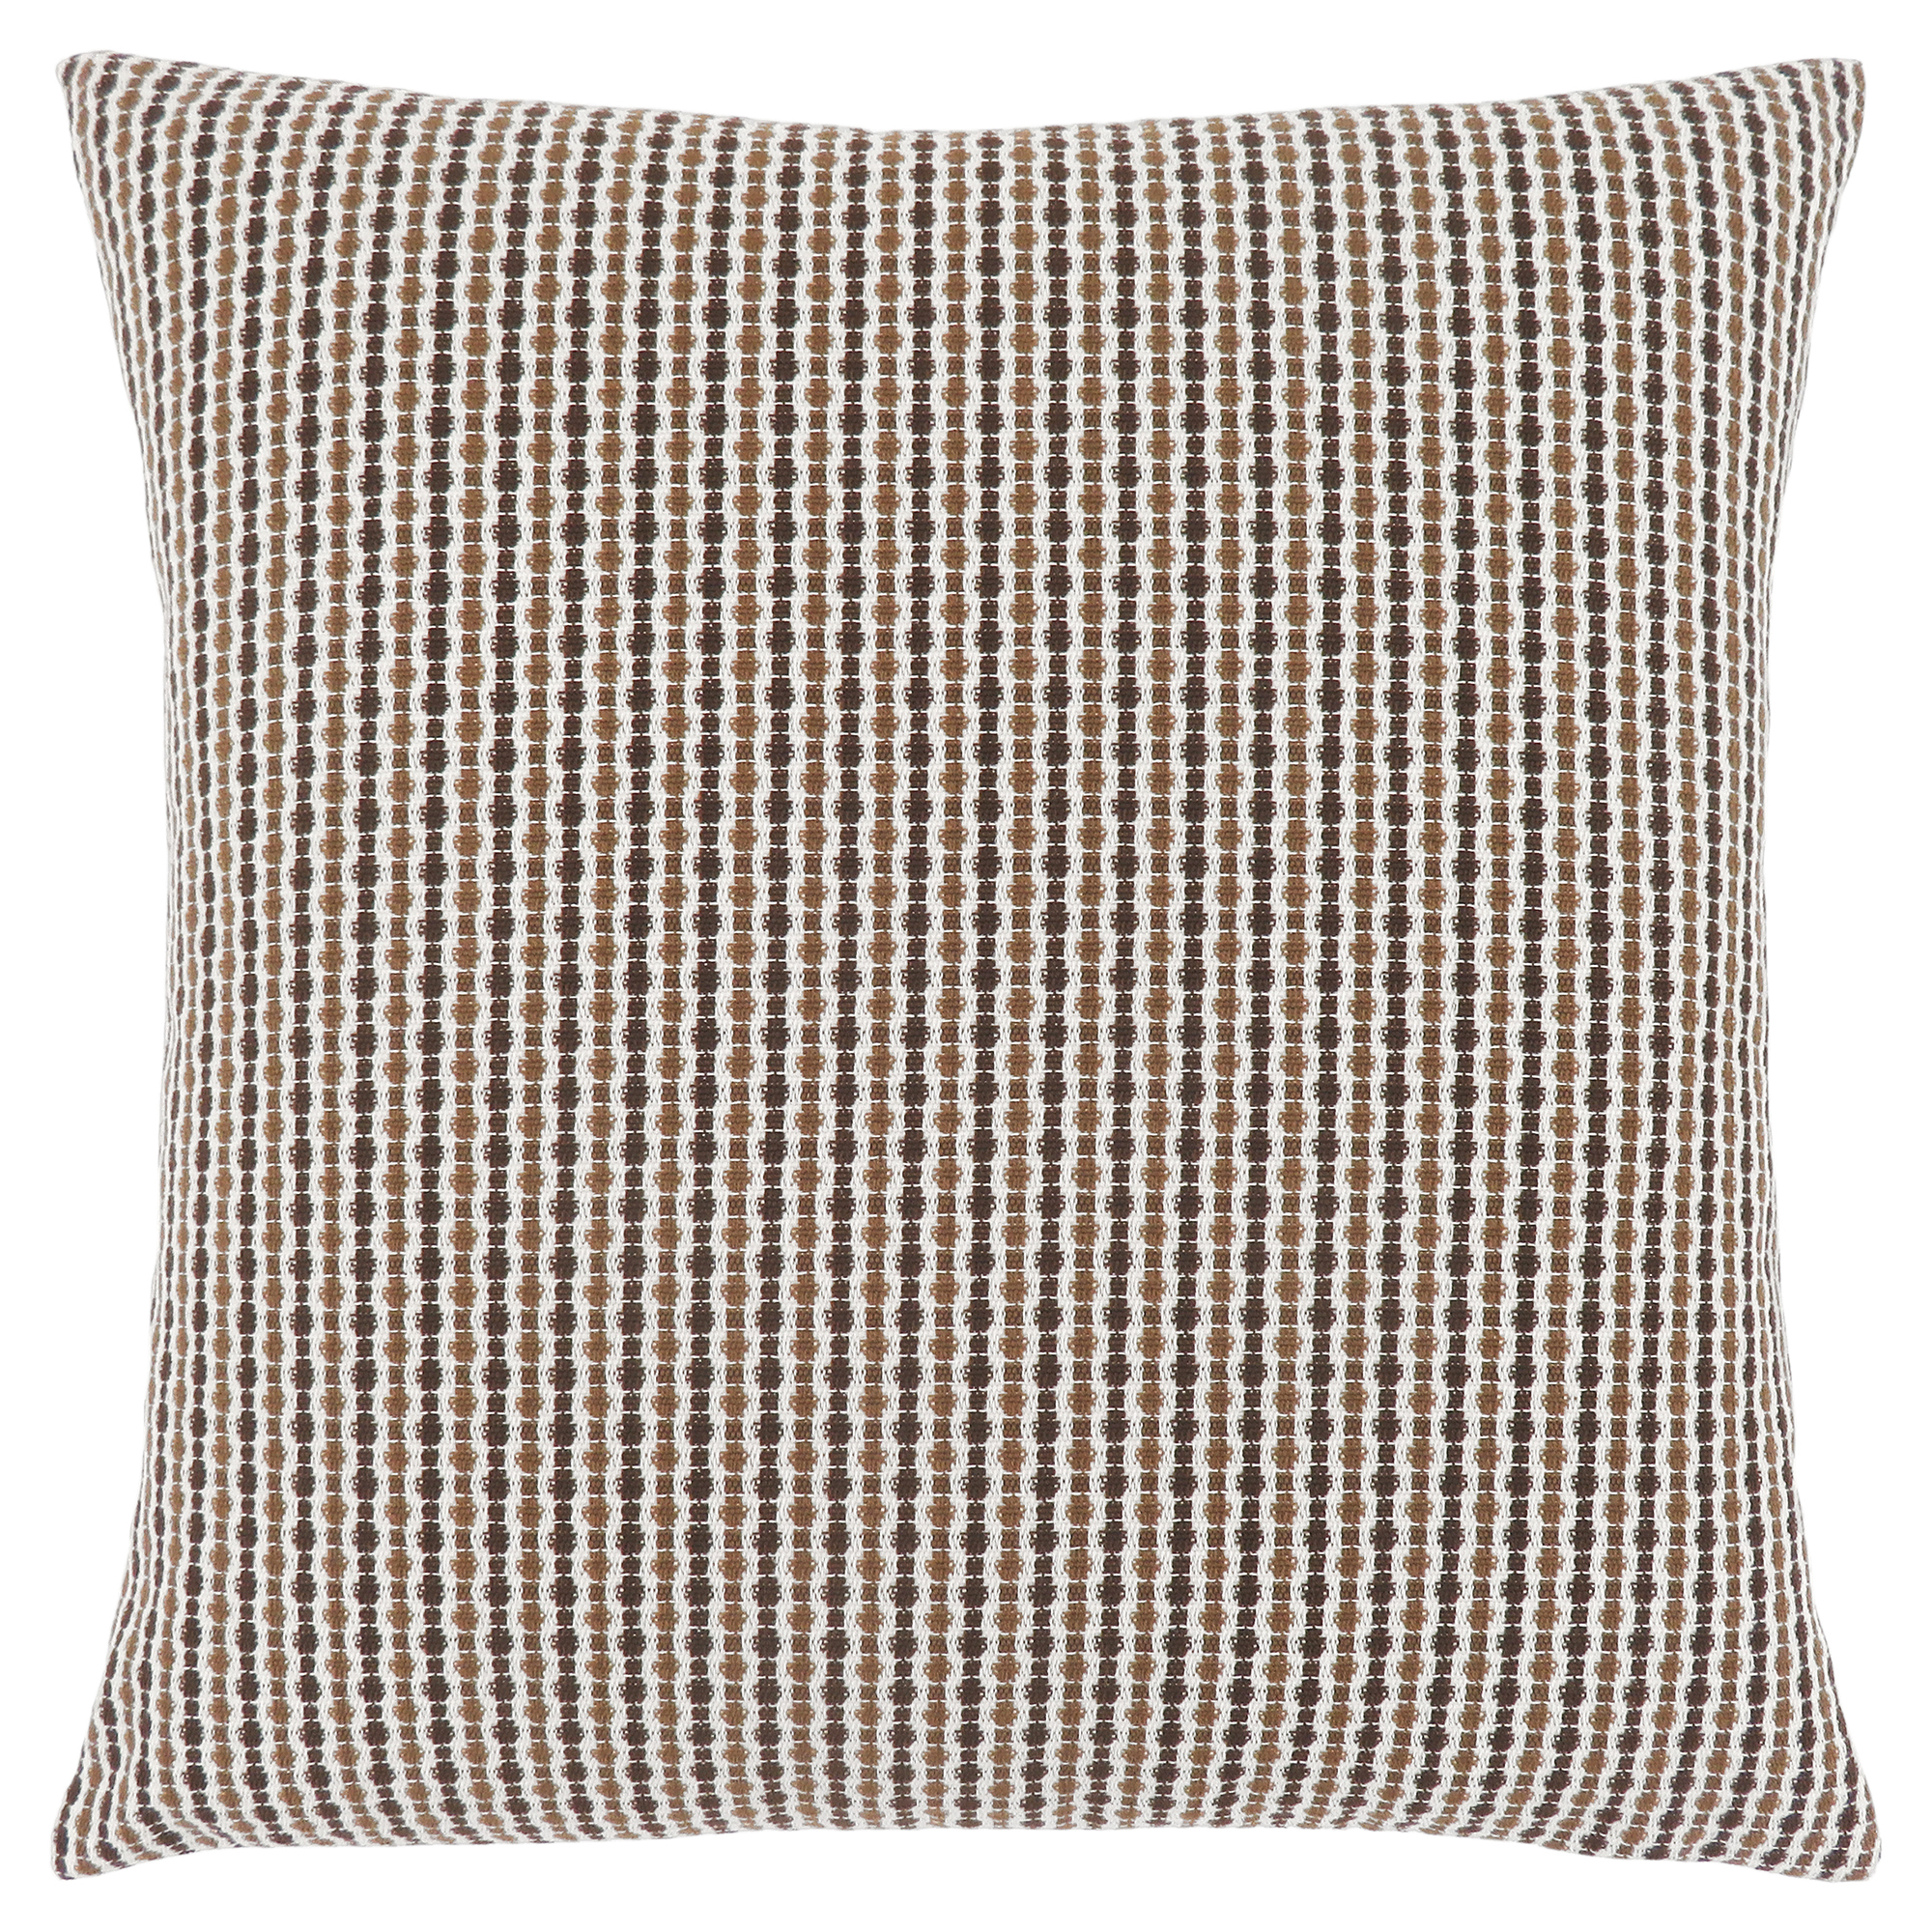 "PILLOW - 18""X 18"" / LIGHT / DARK BROWN ABSTRACT DOT / 1PC"